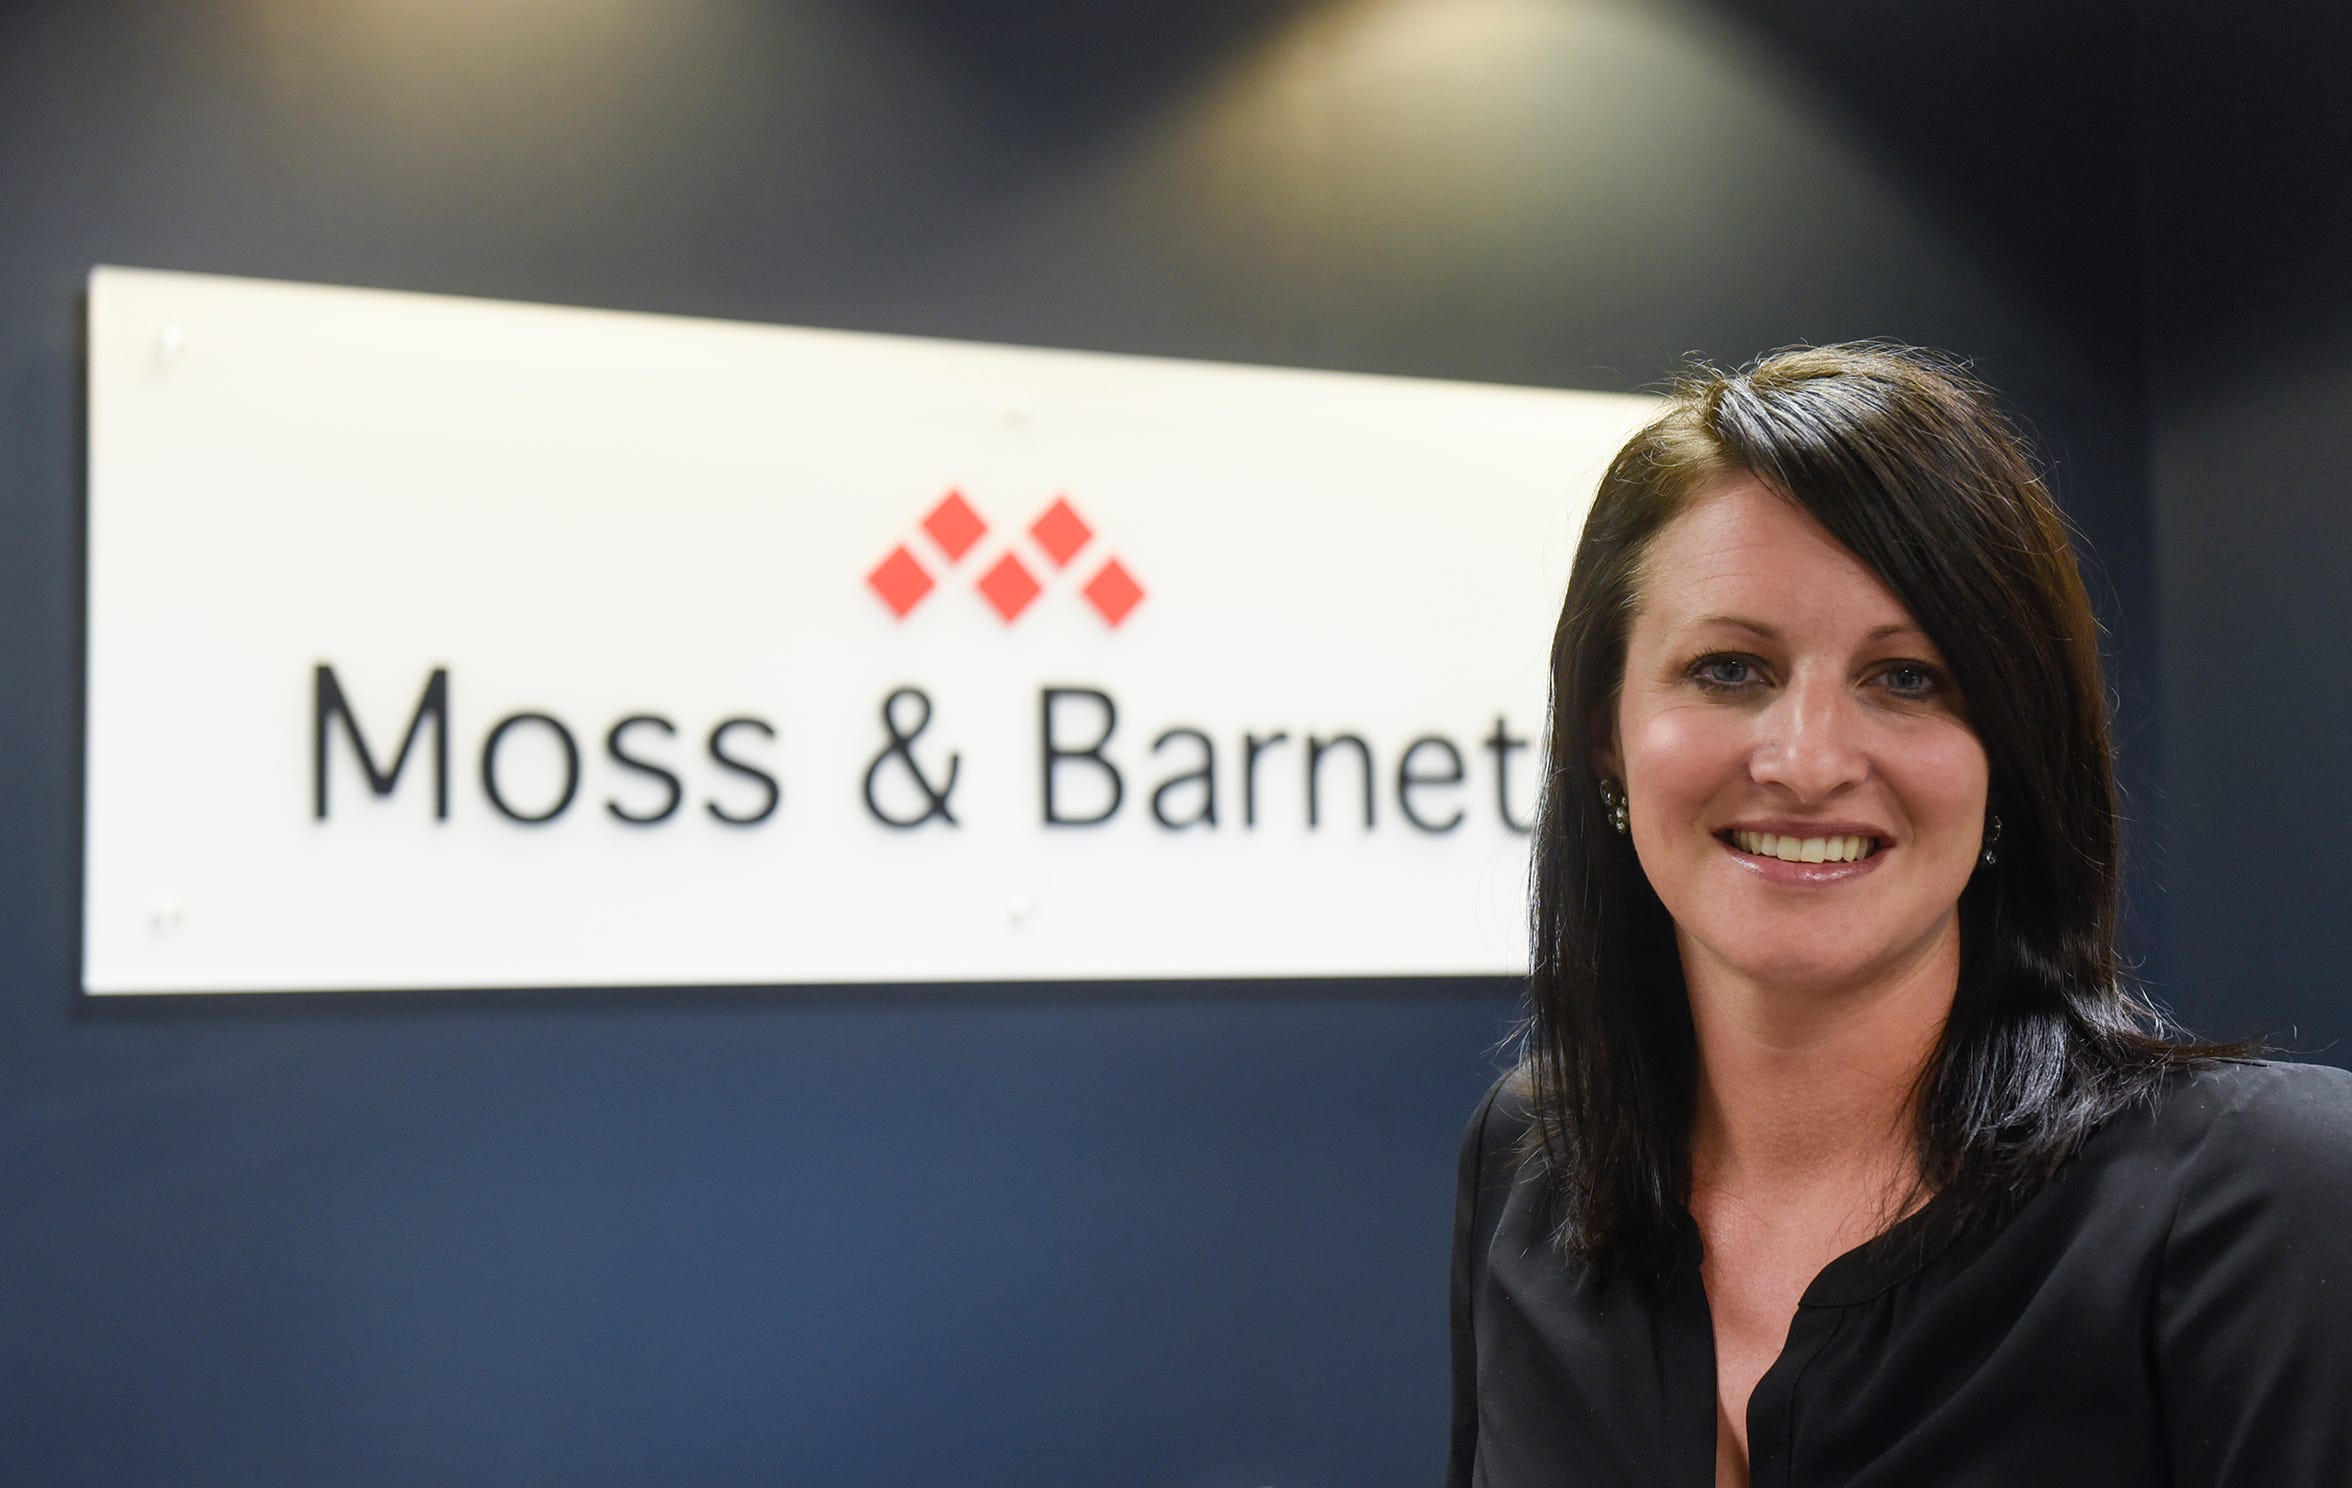 Moss & Barnett Business Development Director Shannon Wiger poses for a photograph Wednesday, Dec. 12, in St. Cloud.